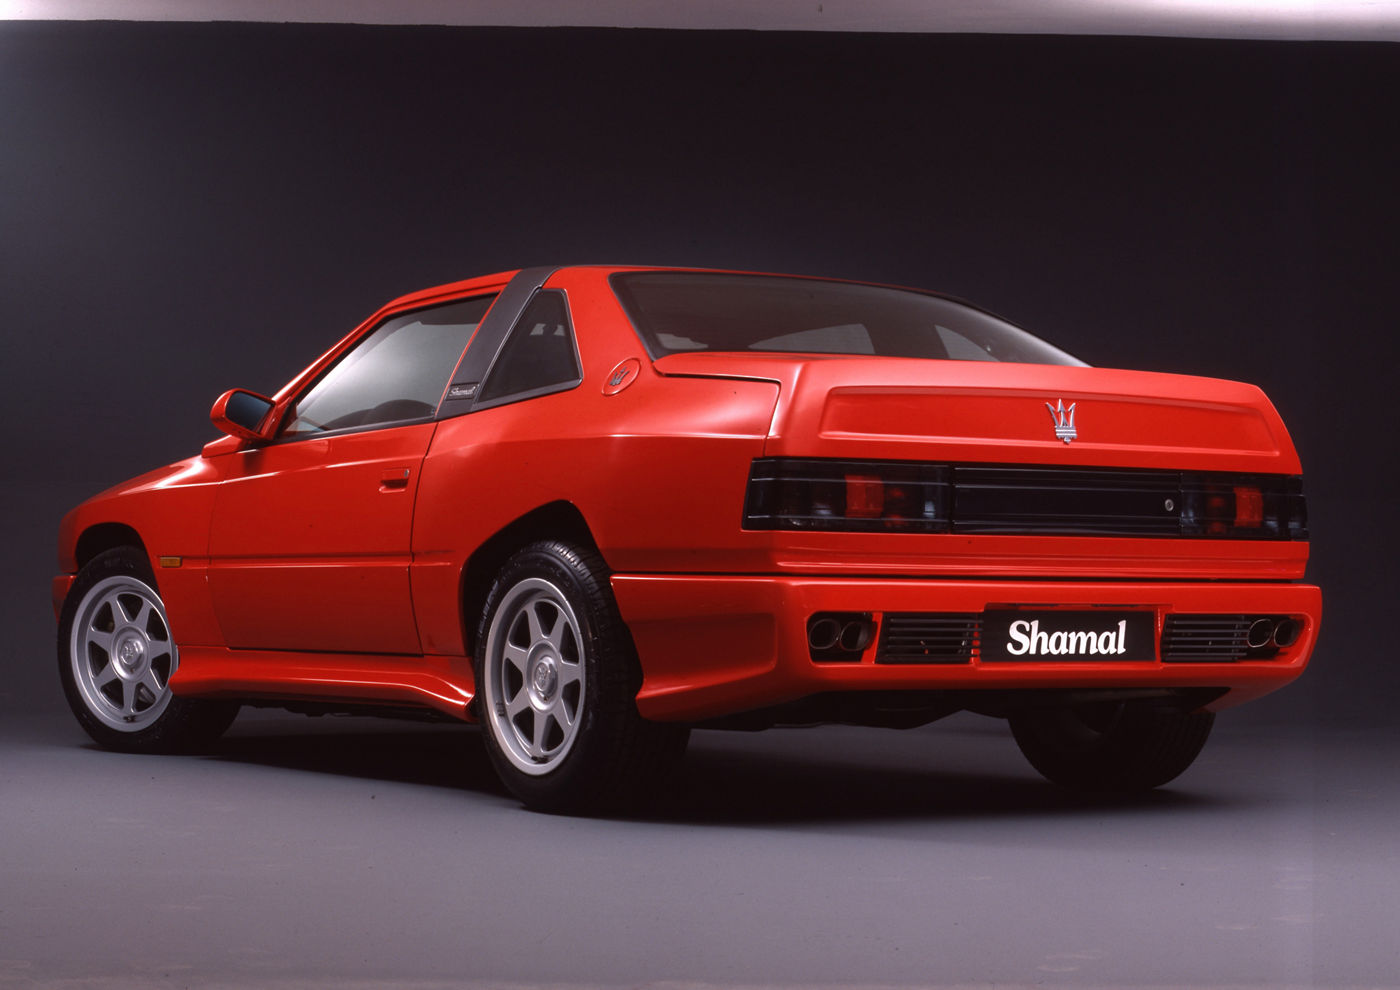 1990 Maserati Shamal - Biturbo - classic sports car model in red